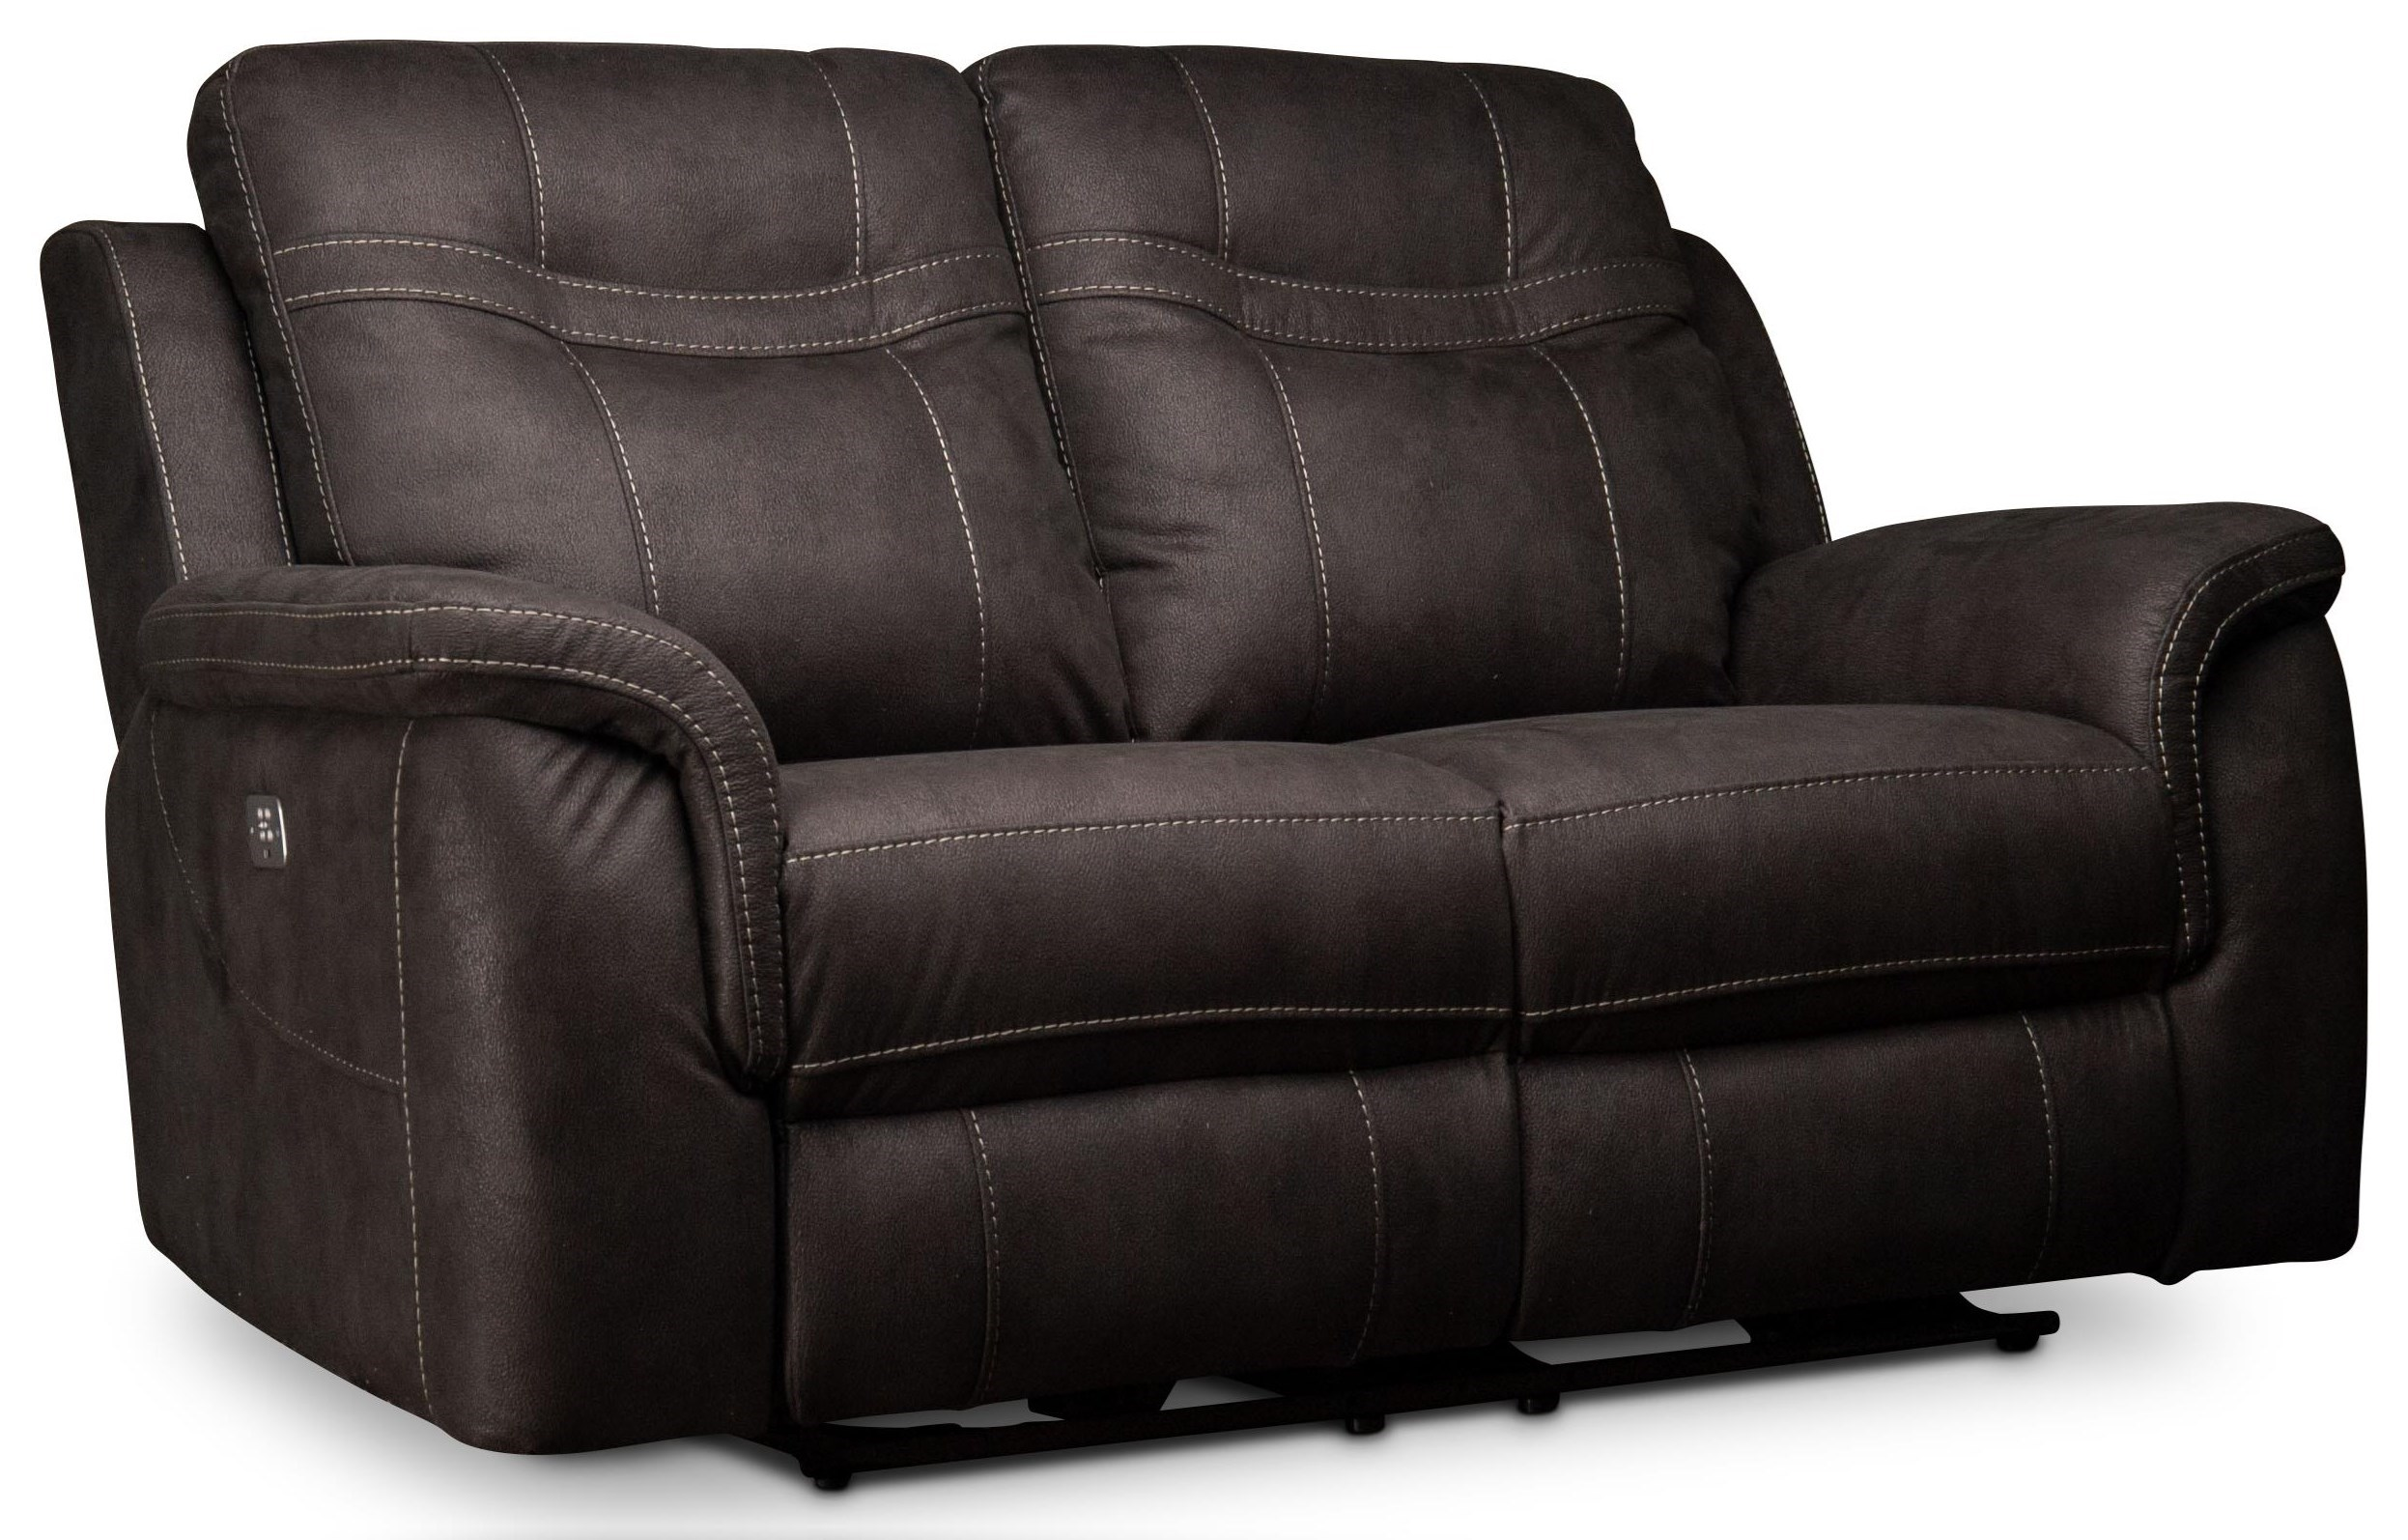 Power Reclining Loveseat with Power Head Rest